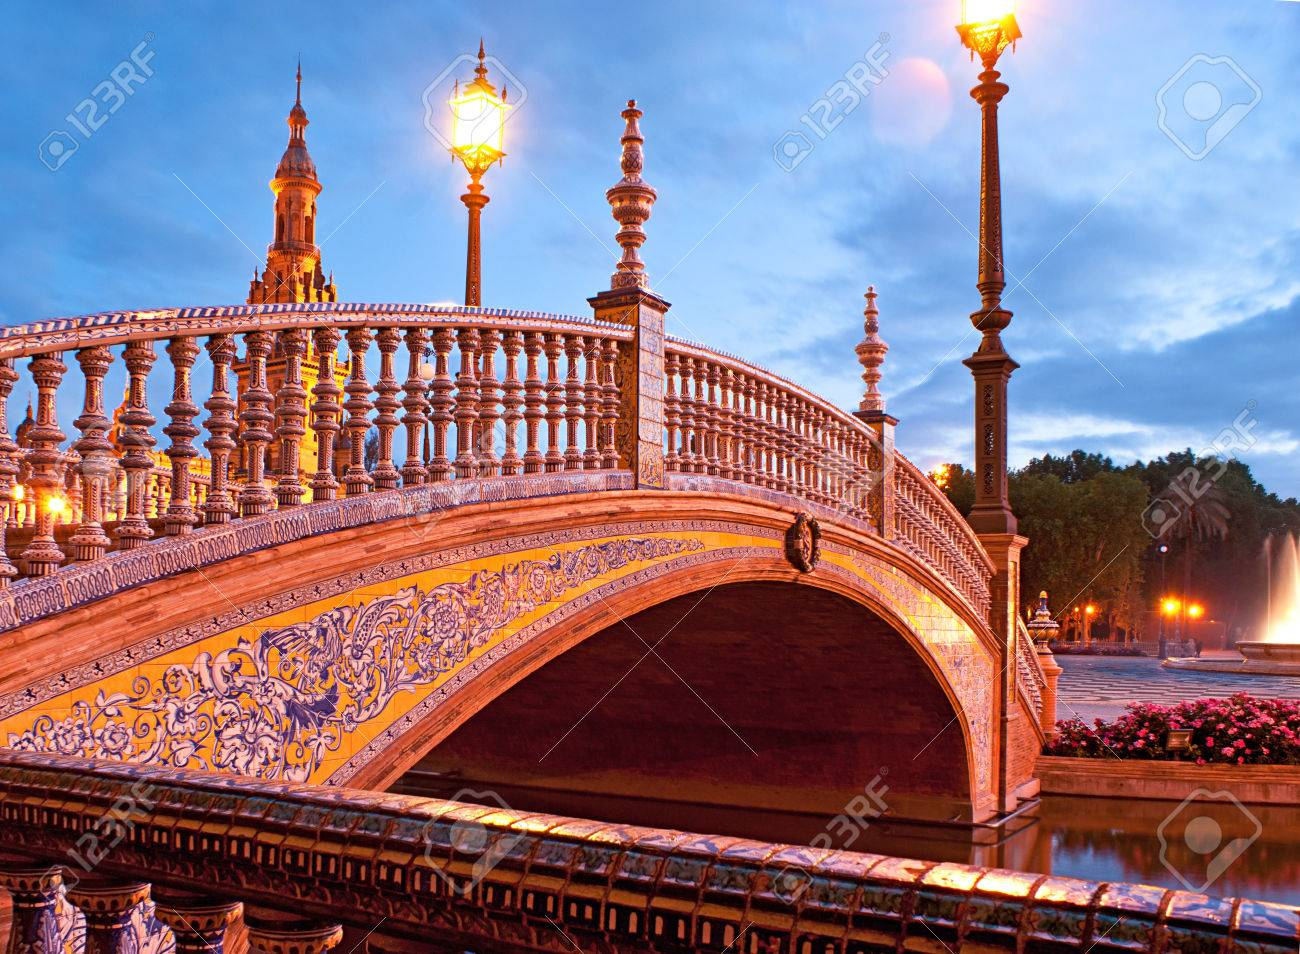 The tiny bridge decorated with painted tiles ceramic hand rails the tiny bridge decorated with painted tiles ceramic hand rails and scenic streetlights spain dailygadgetfo Images